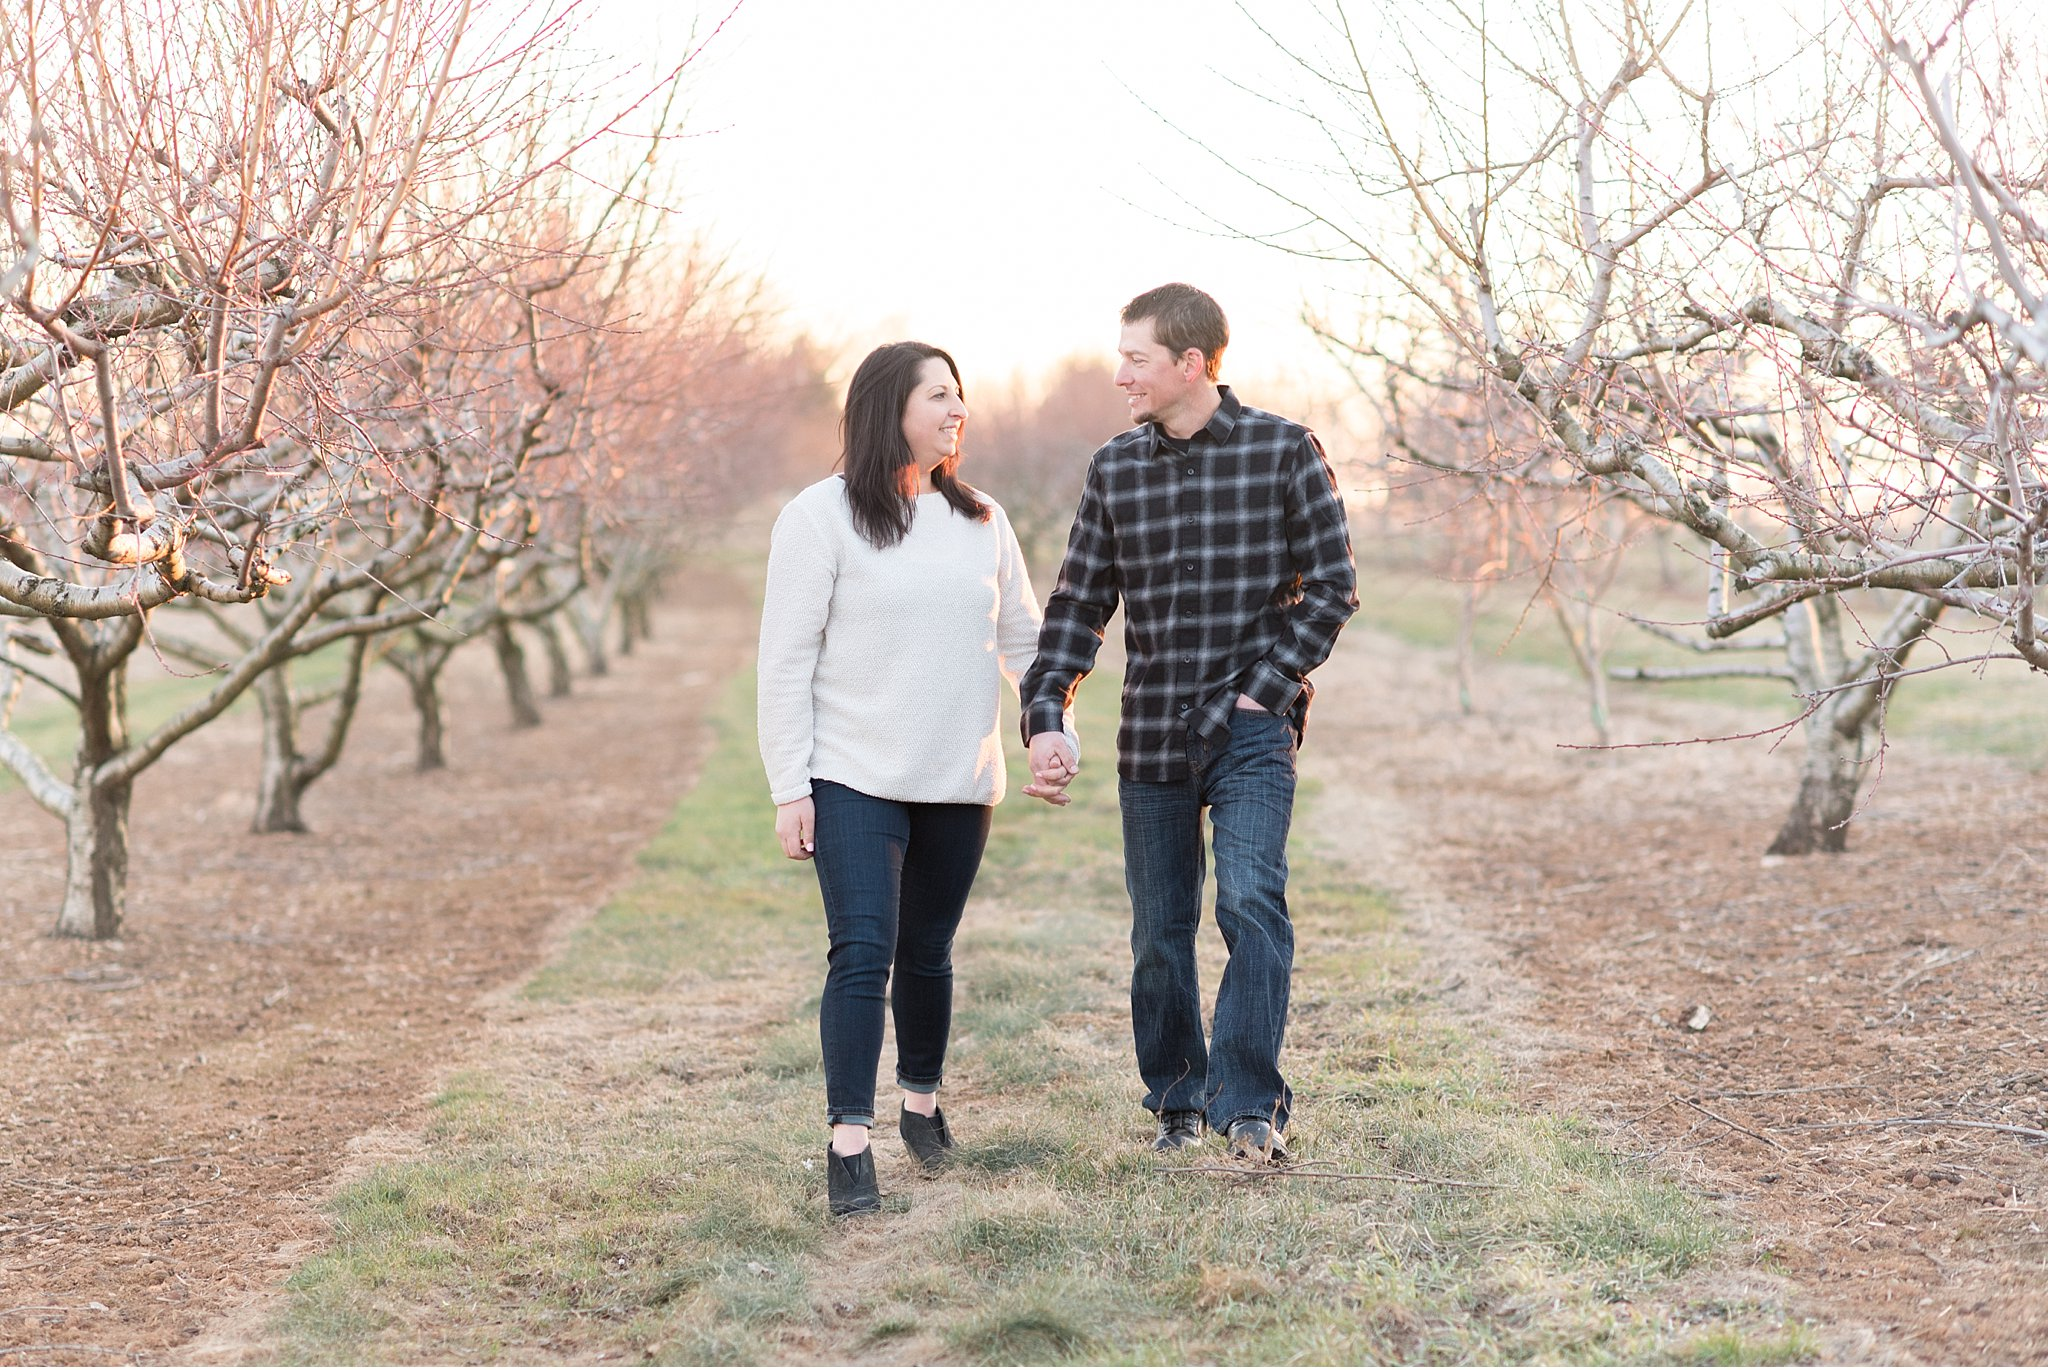 New Providence orchard Lancaster County Wedding and engagement photographer photo_0969.jpg